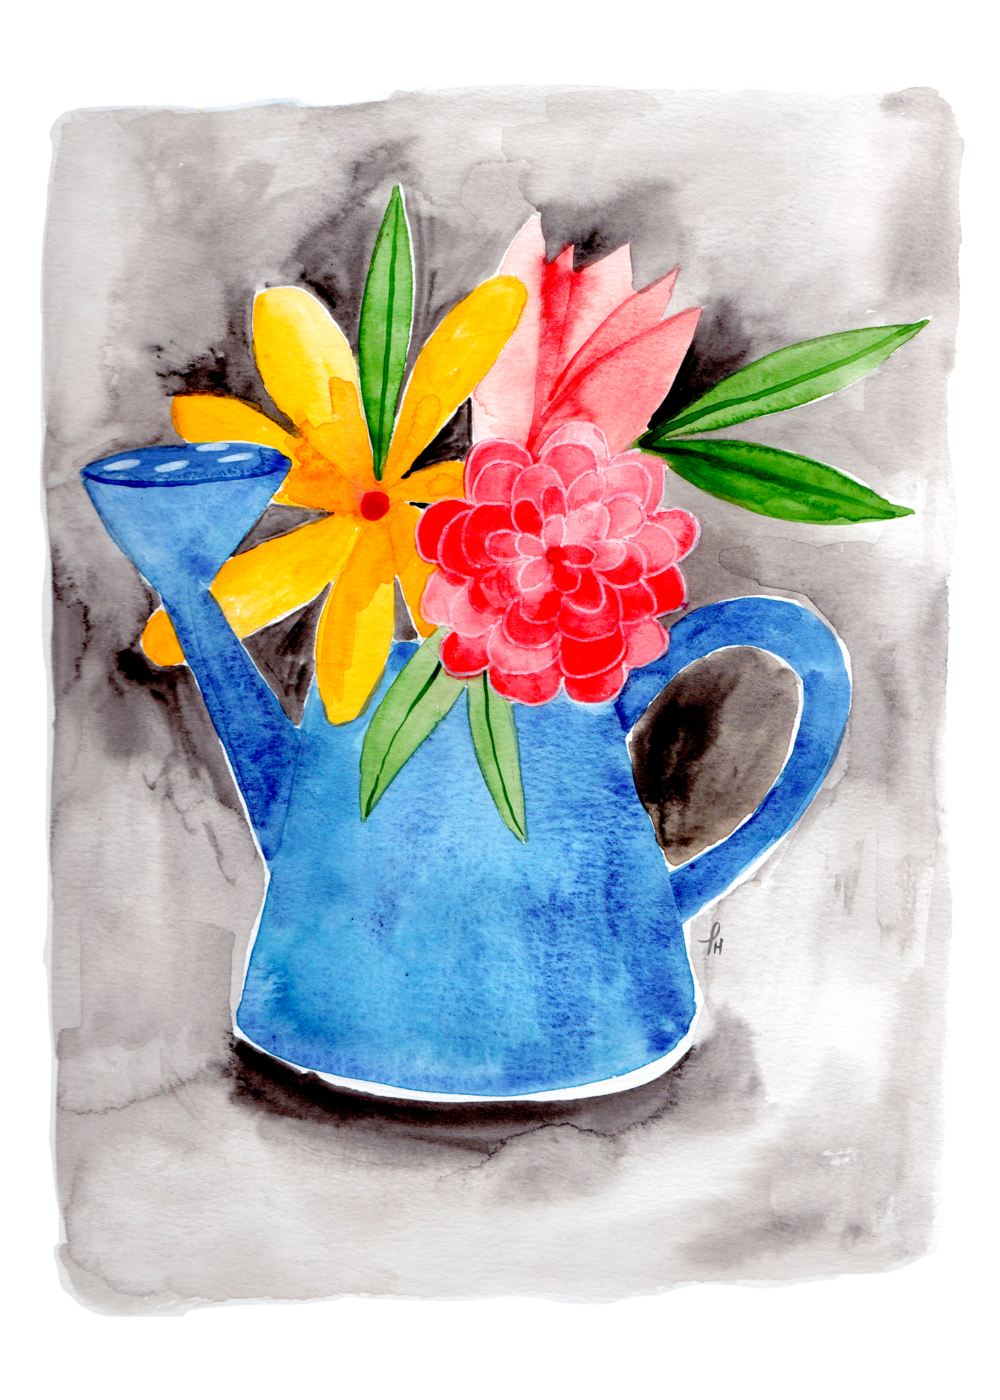 watercanFloral2_merged_5x7.png